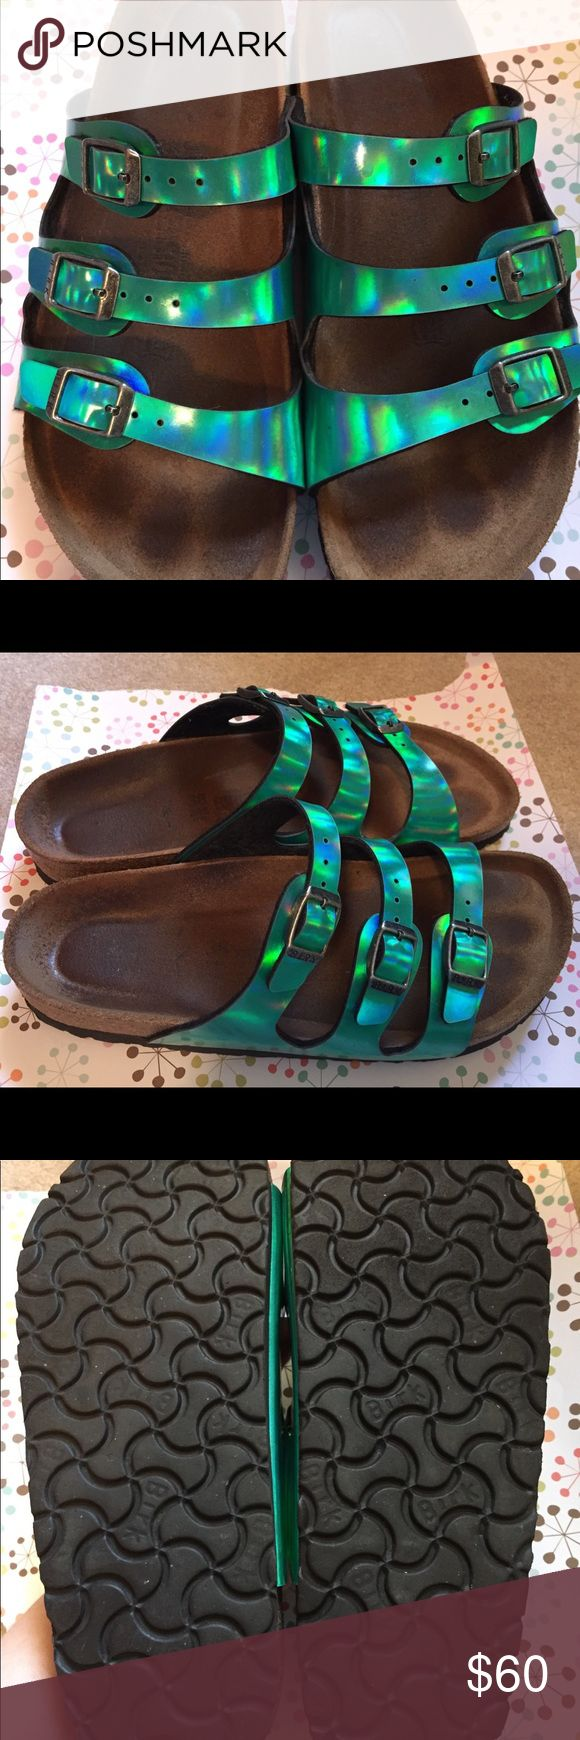 Birkenstock Florida Mirror Green Gently used Birkenstock Florida Mirror Green   Genuine Birkenstock (see photo). The bottom treads are in great condition - very clean and little to no wear! Beautiful, vibrant green! Birkenstock Shoes Sandals